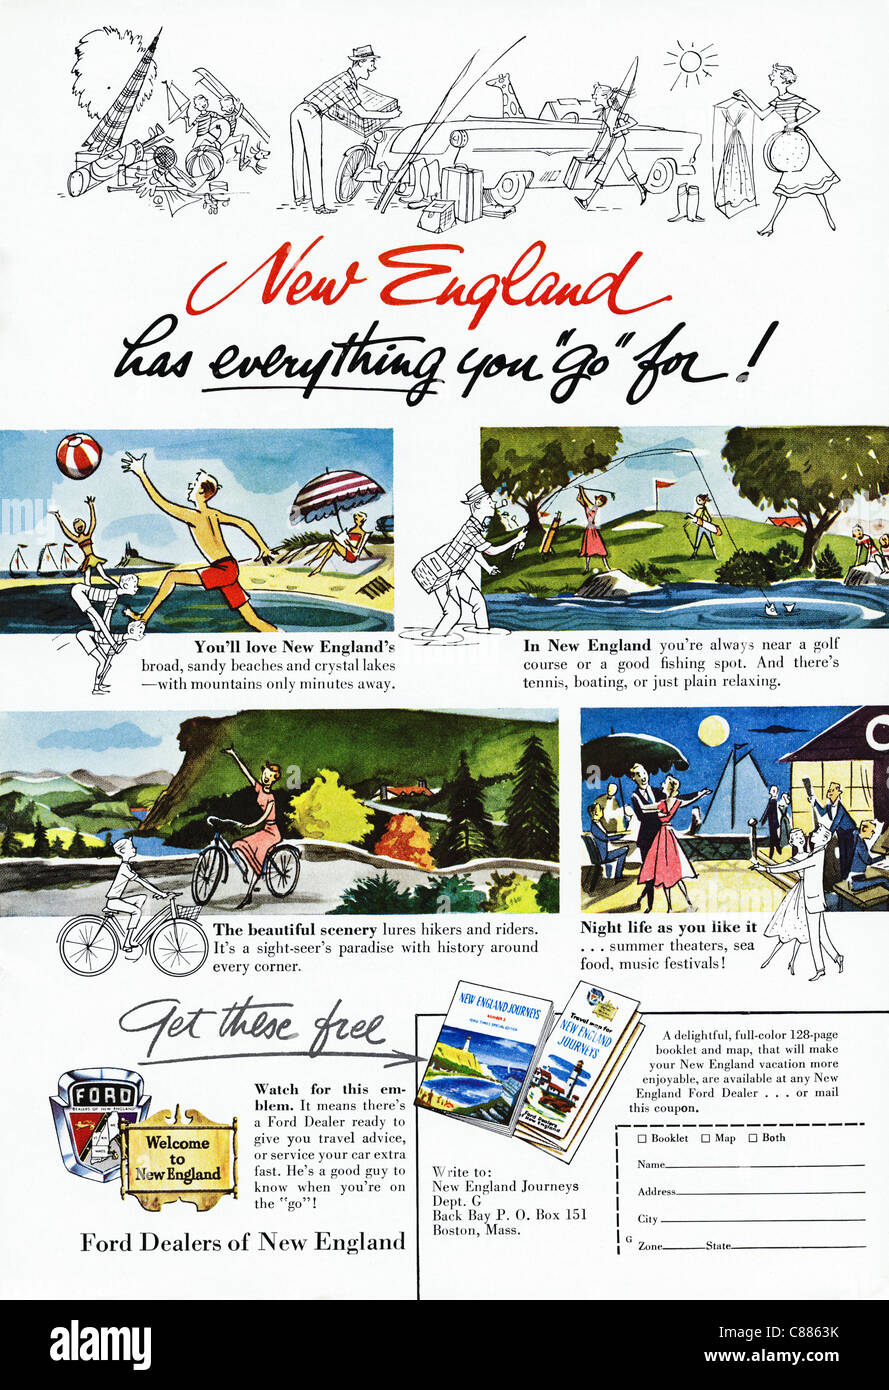 American magazine advertisement circa 1954 advertising vacations in NEW ENGLAND - Stock Image